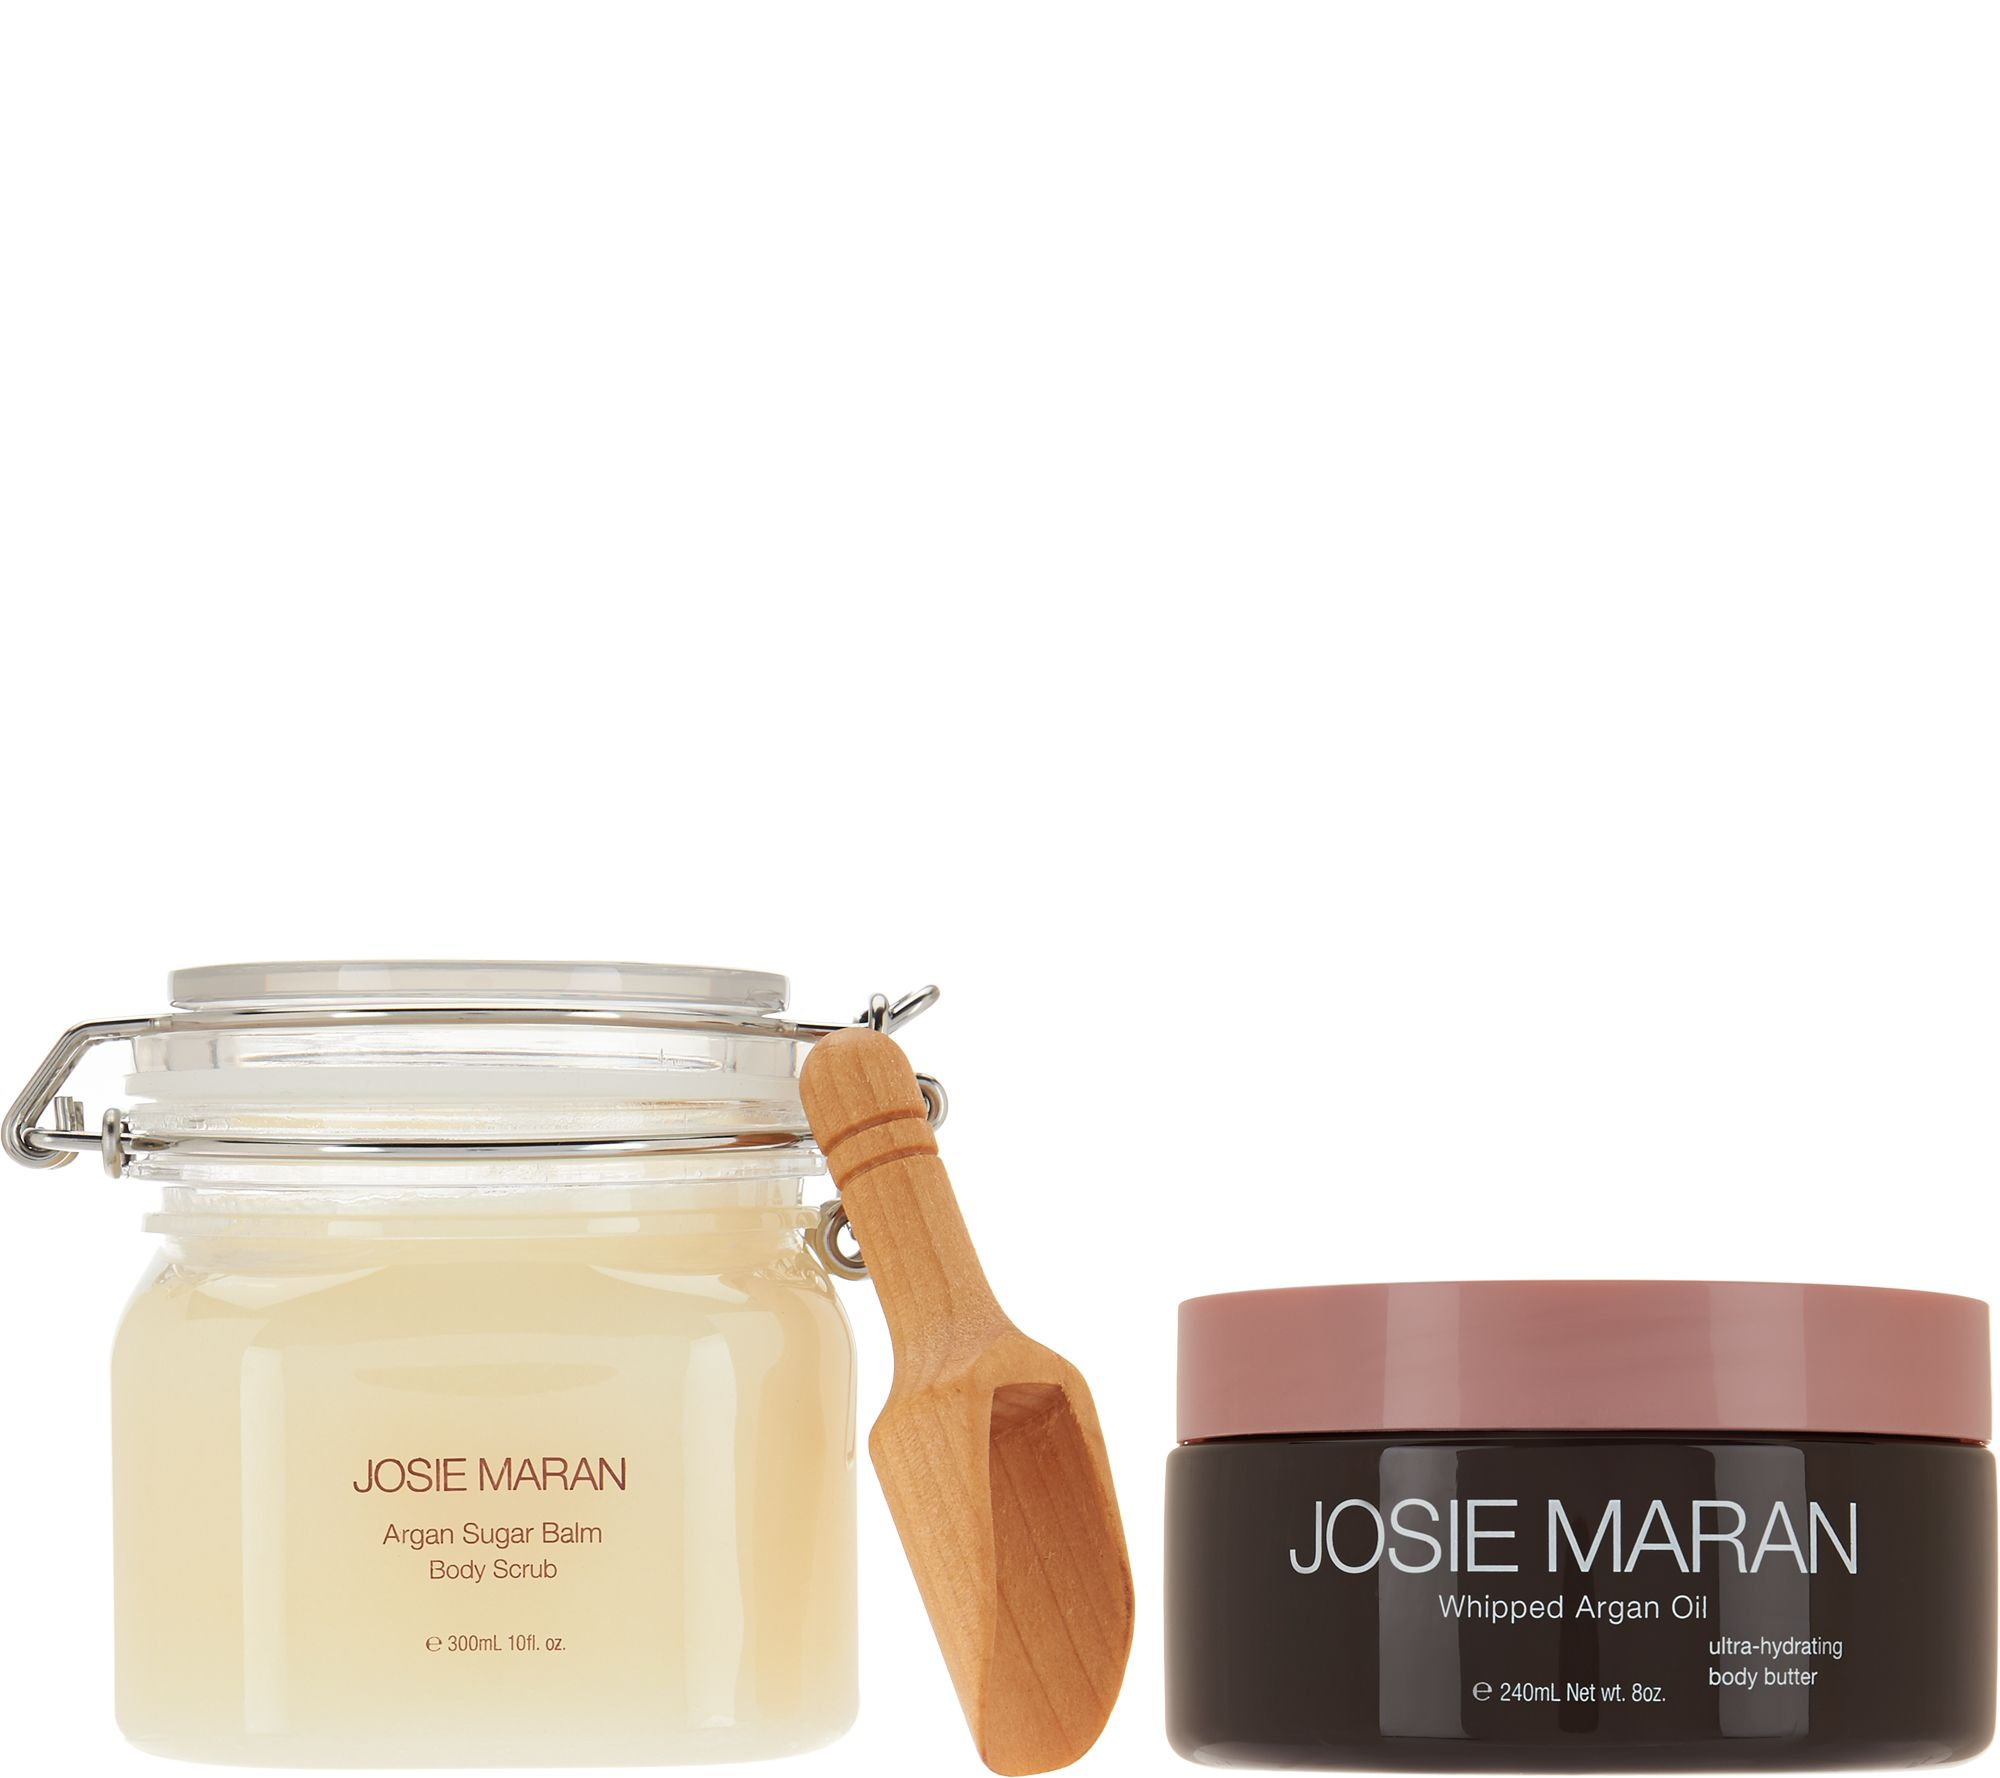 josie maran whipped argan body butter sugar balm duo auto delivery page 1. Black Bedroom Furniture Sets. Home Design Ideas